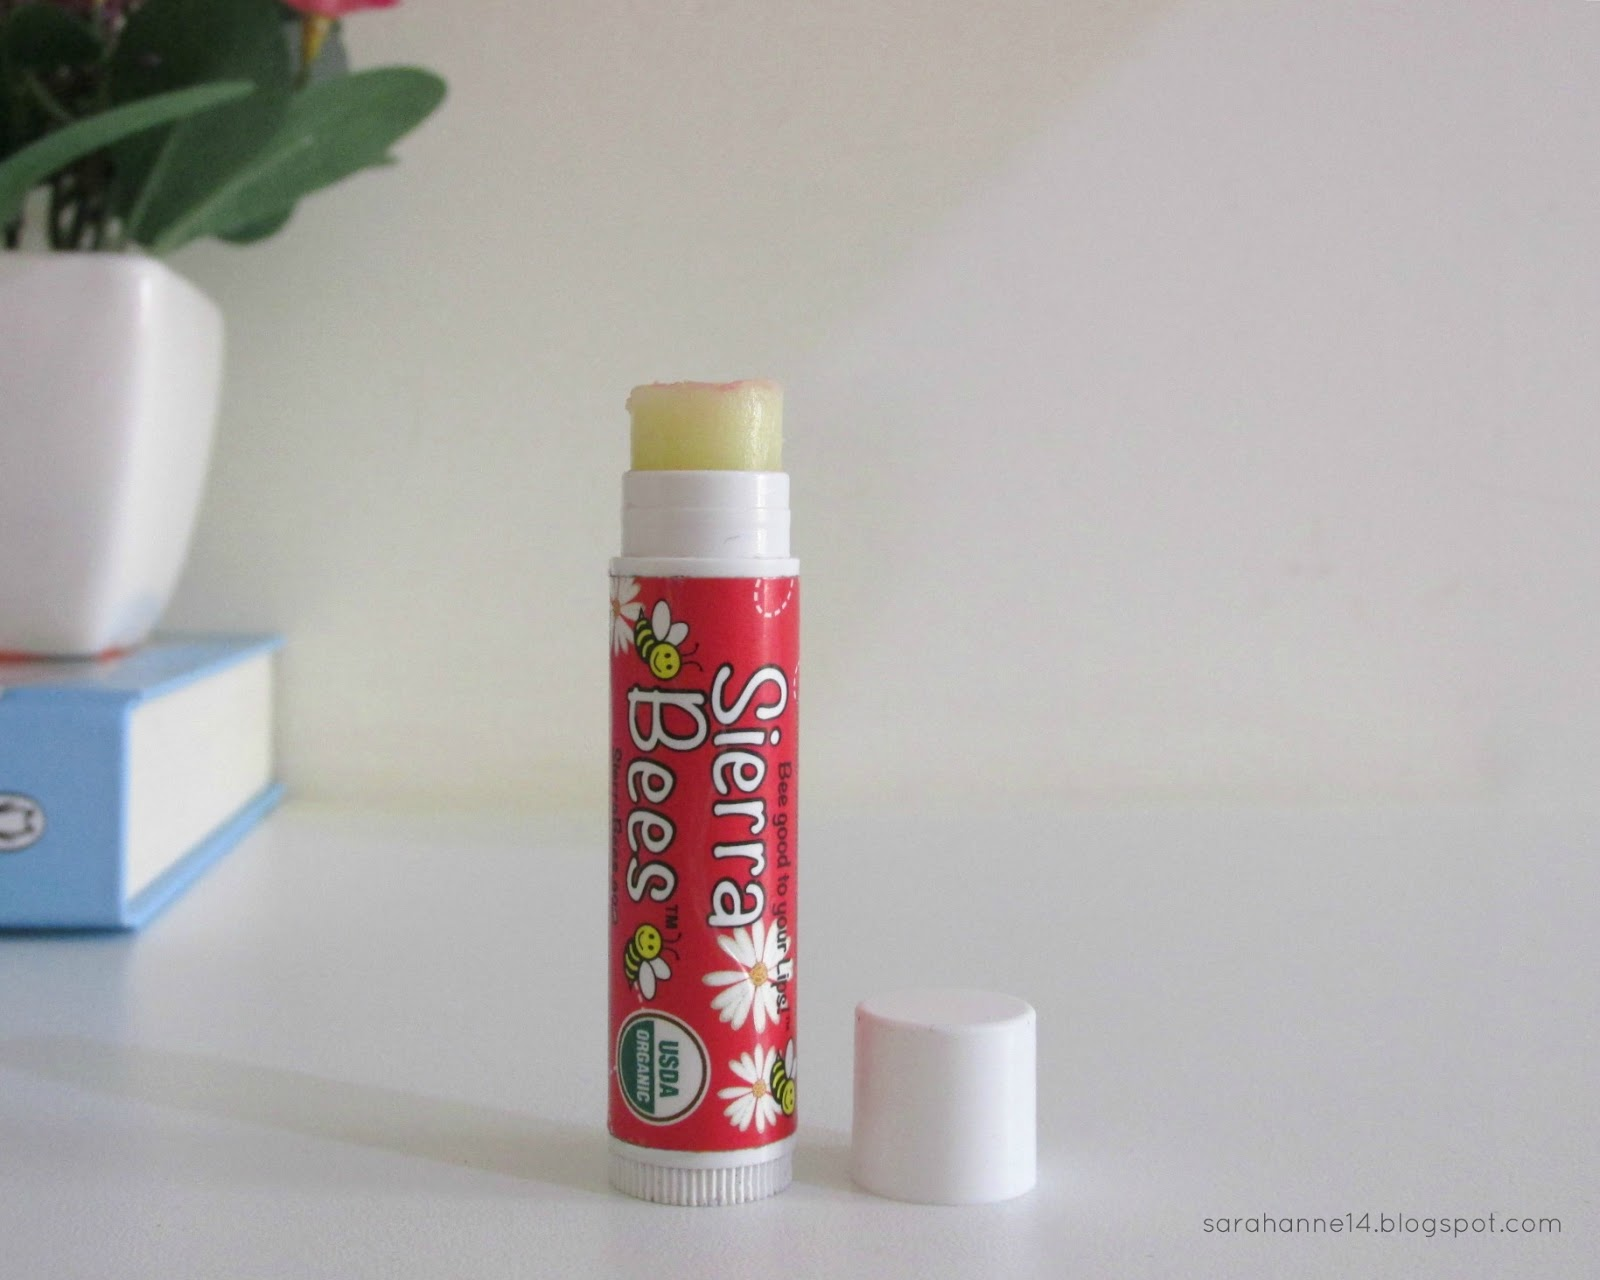 top 5 lip products, lipstick, lipgloss, Sarahanne14, top 5 lipsticks, sierra bees lipbalm